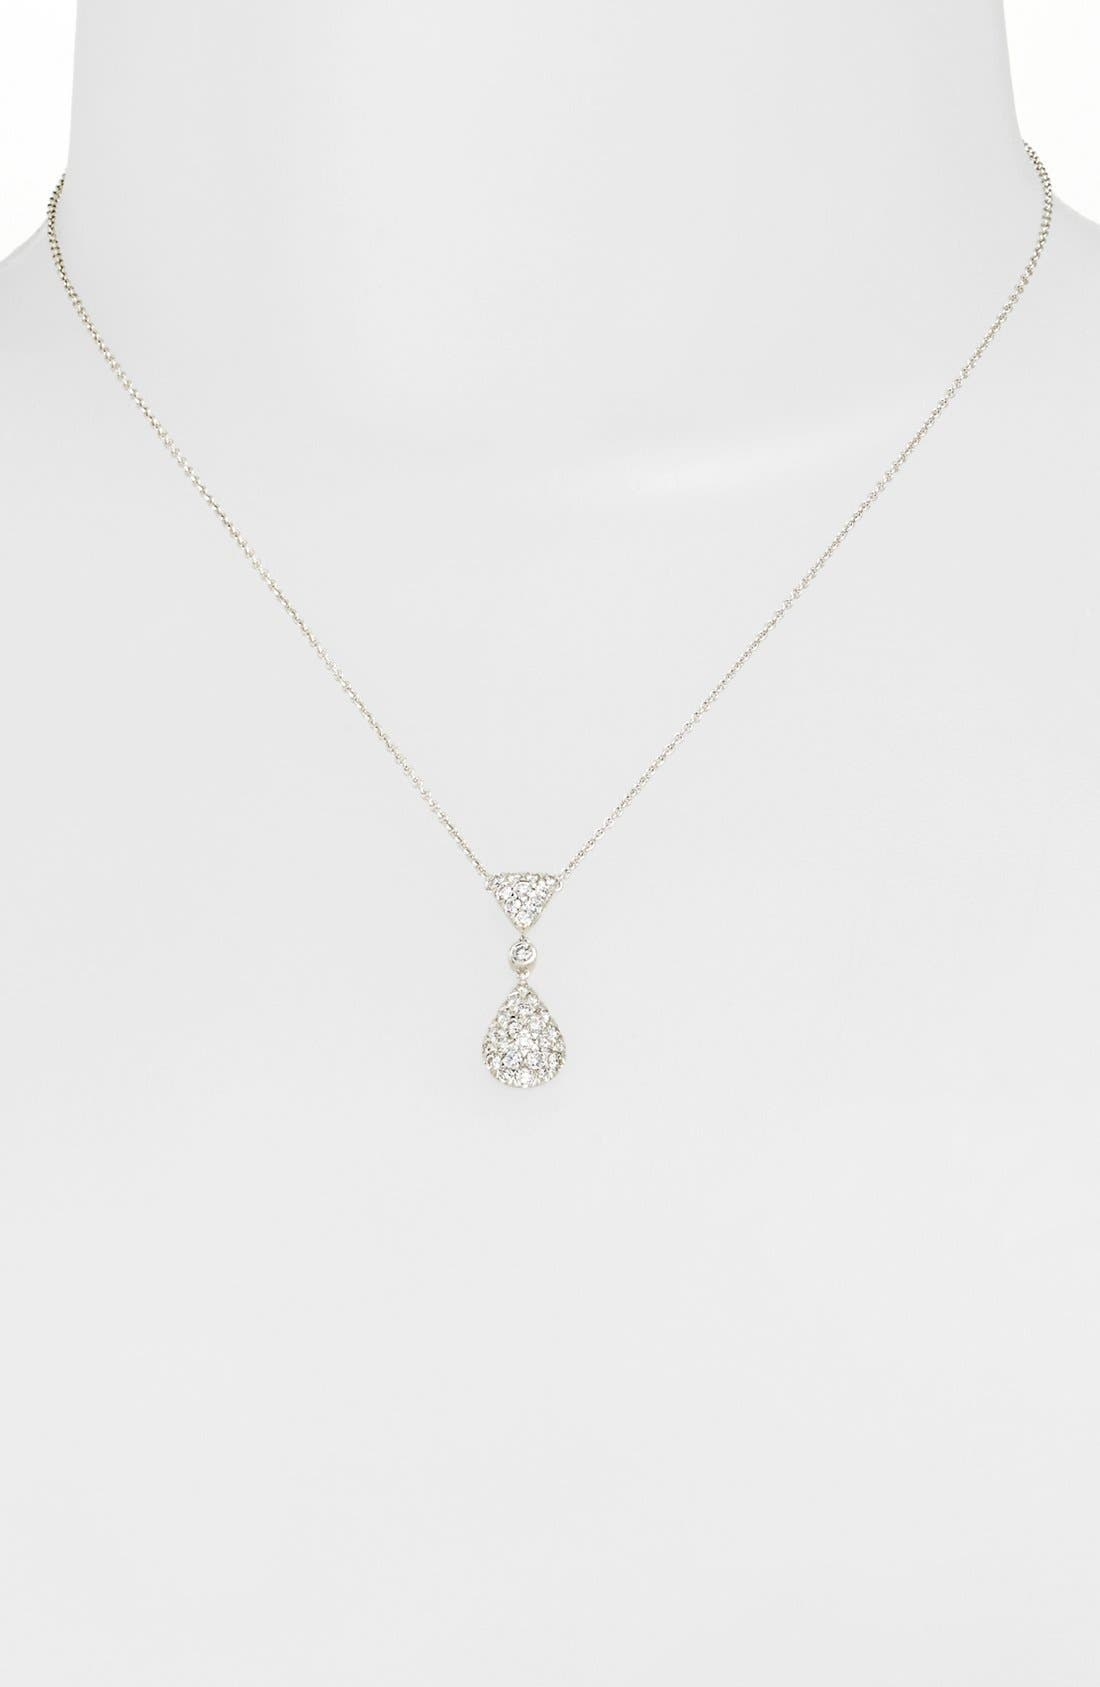 Alternate Image 1 Selected - Kwiat 'Moonrise' Diamond Pendant Necklace